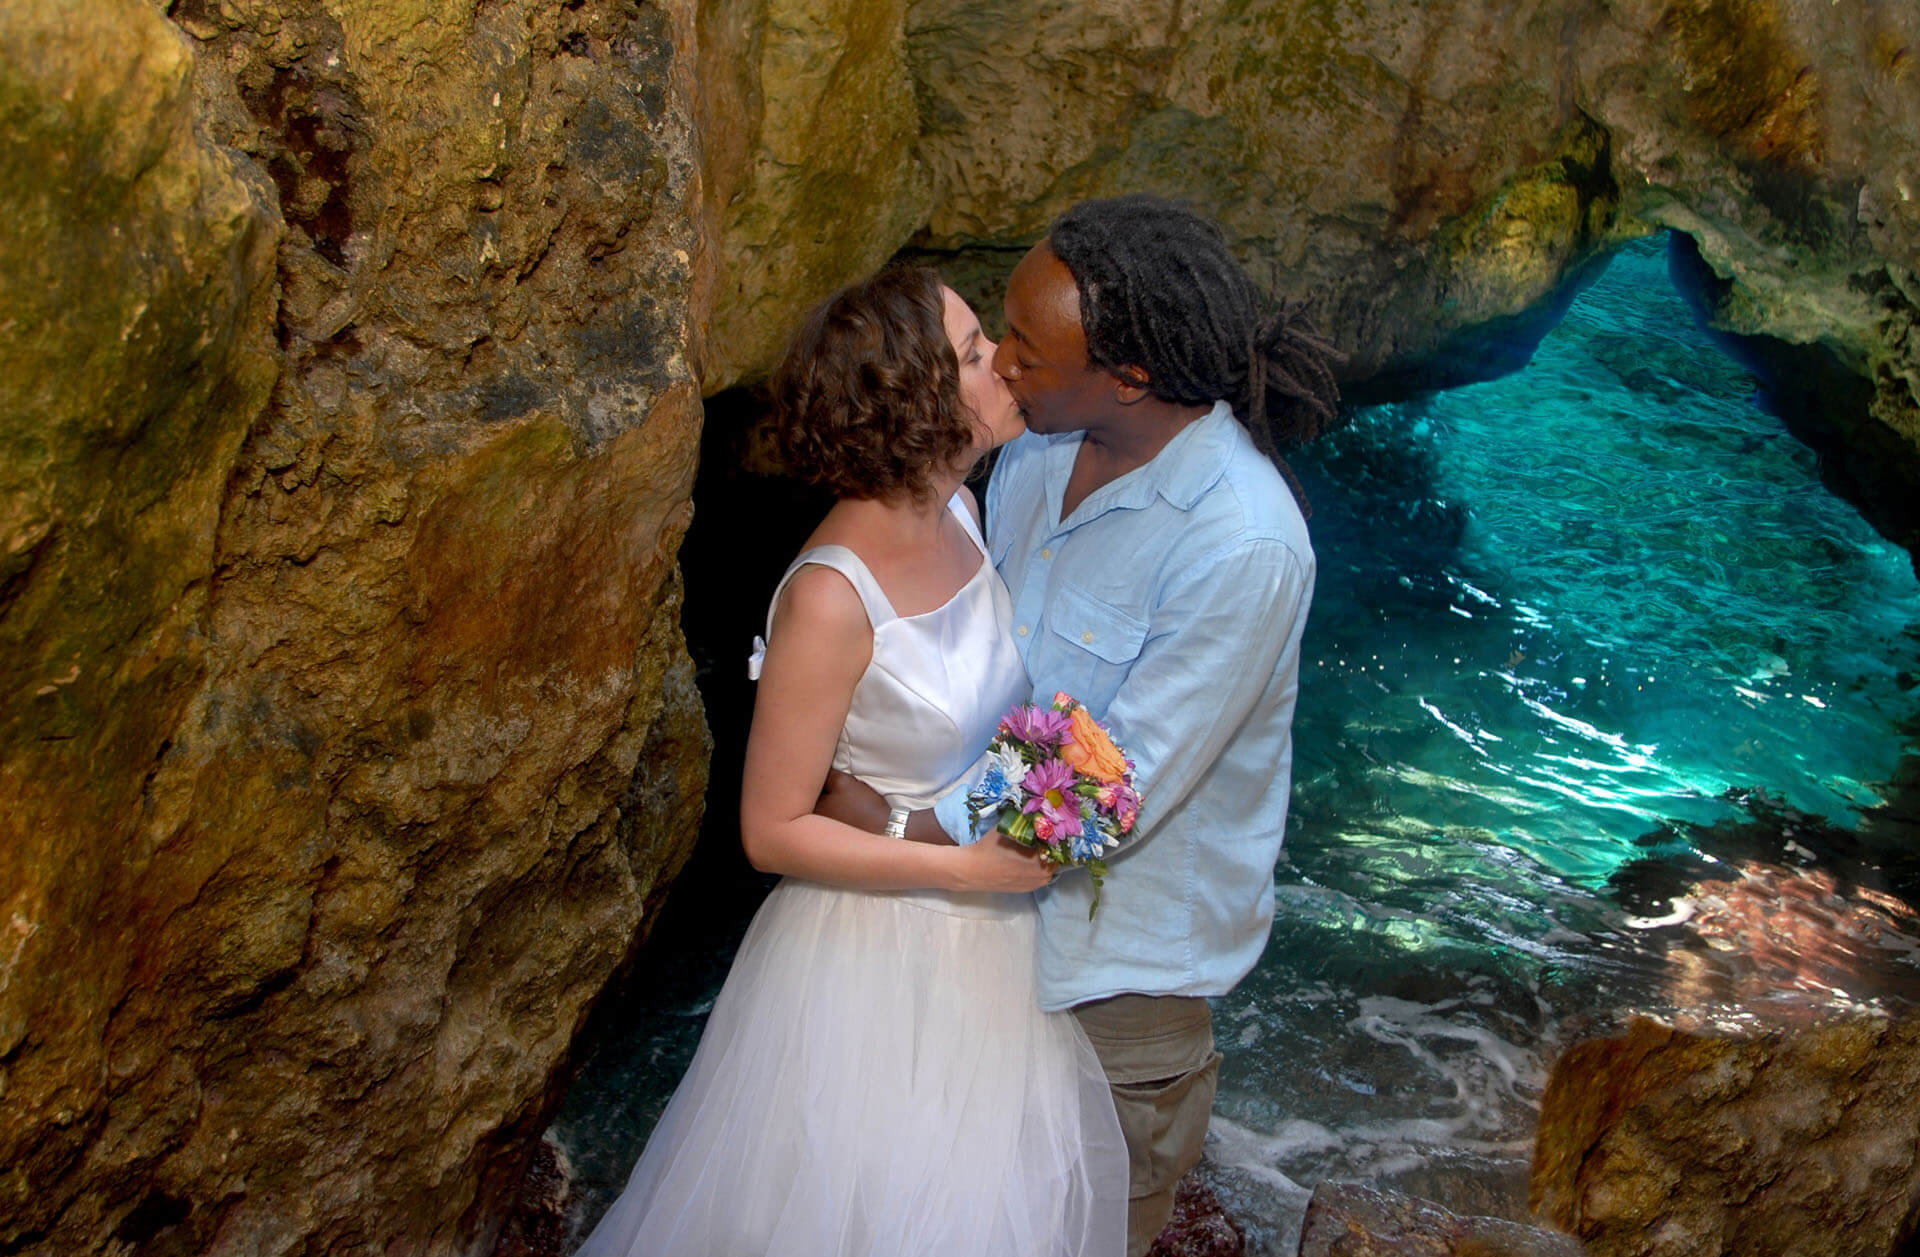 Destination wedding photographer based in Troy, Michigan takes photos all over the world. This one is a Michigan couple who were married in Jamaica.